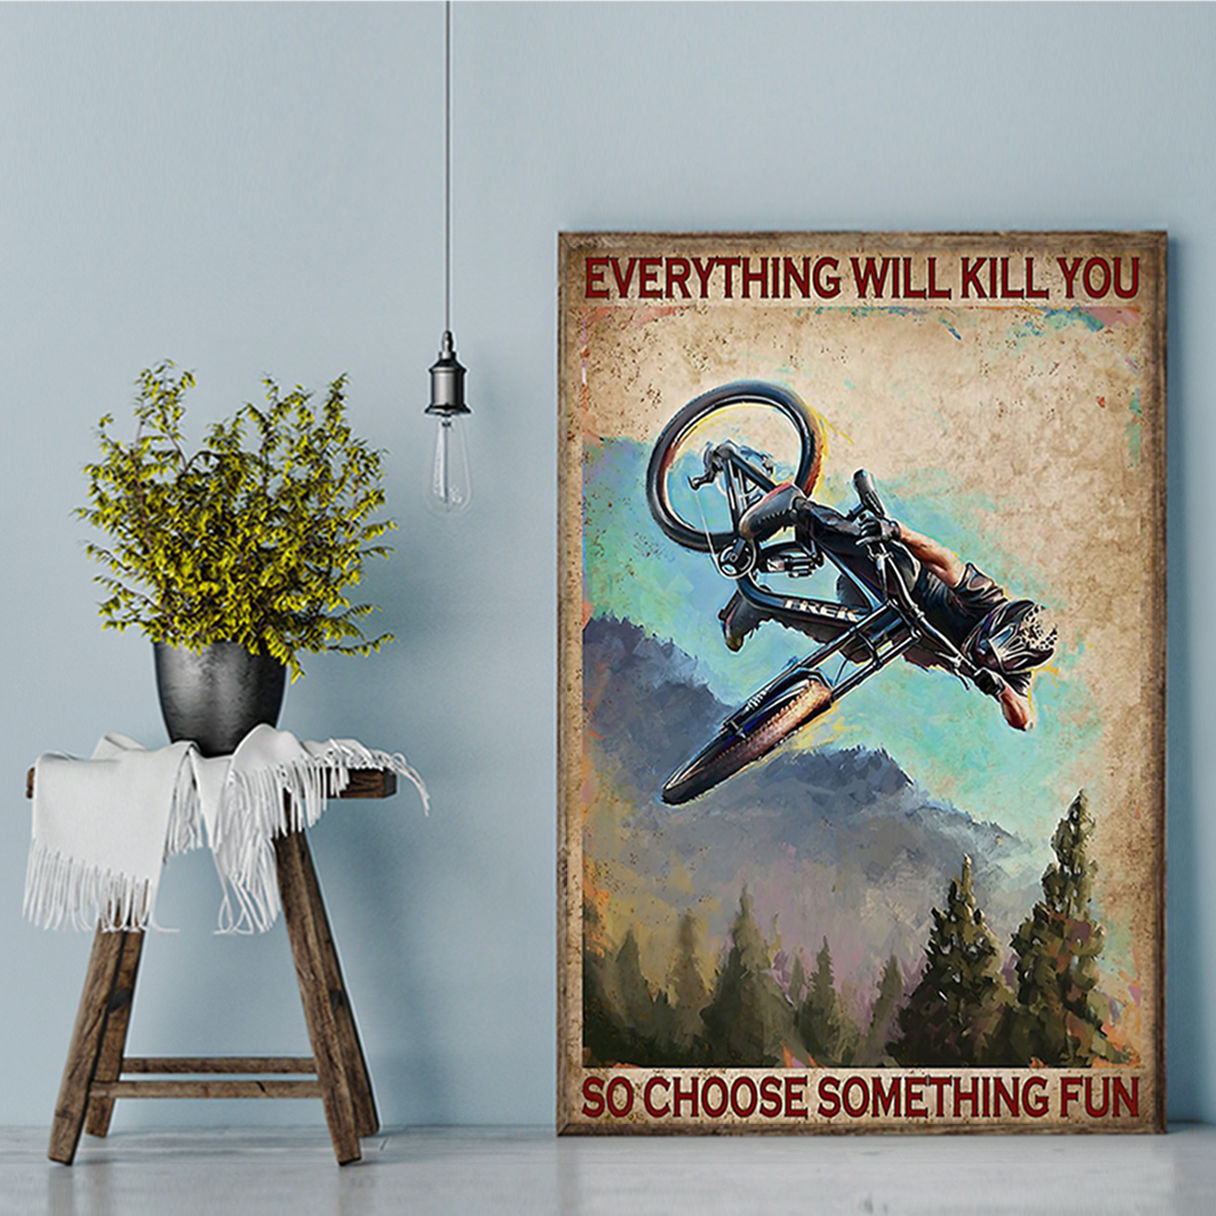 Enduro mountain bike everything will kill you so choose something fun poster A1